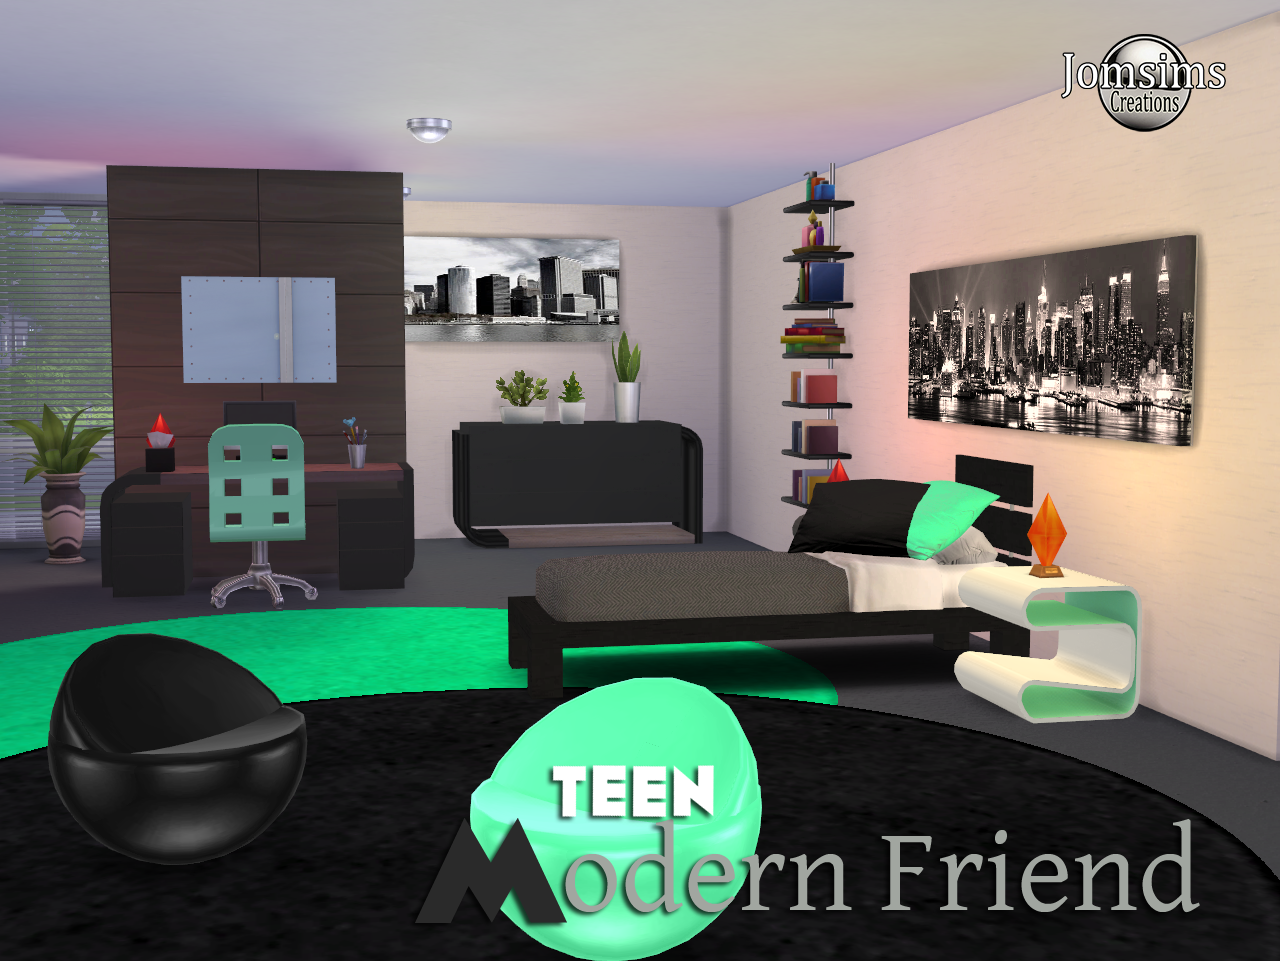 My Sims 4 Blog Modern Friend Teen Bedroom Set By Jomsims